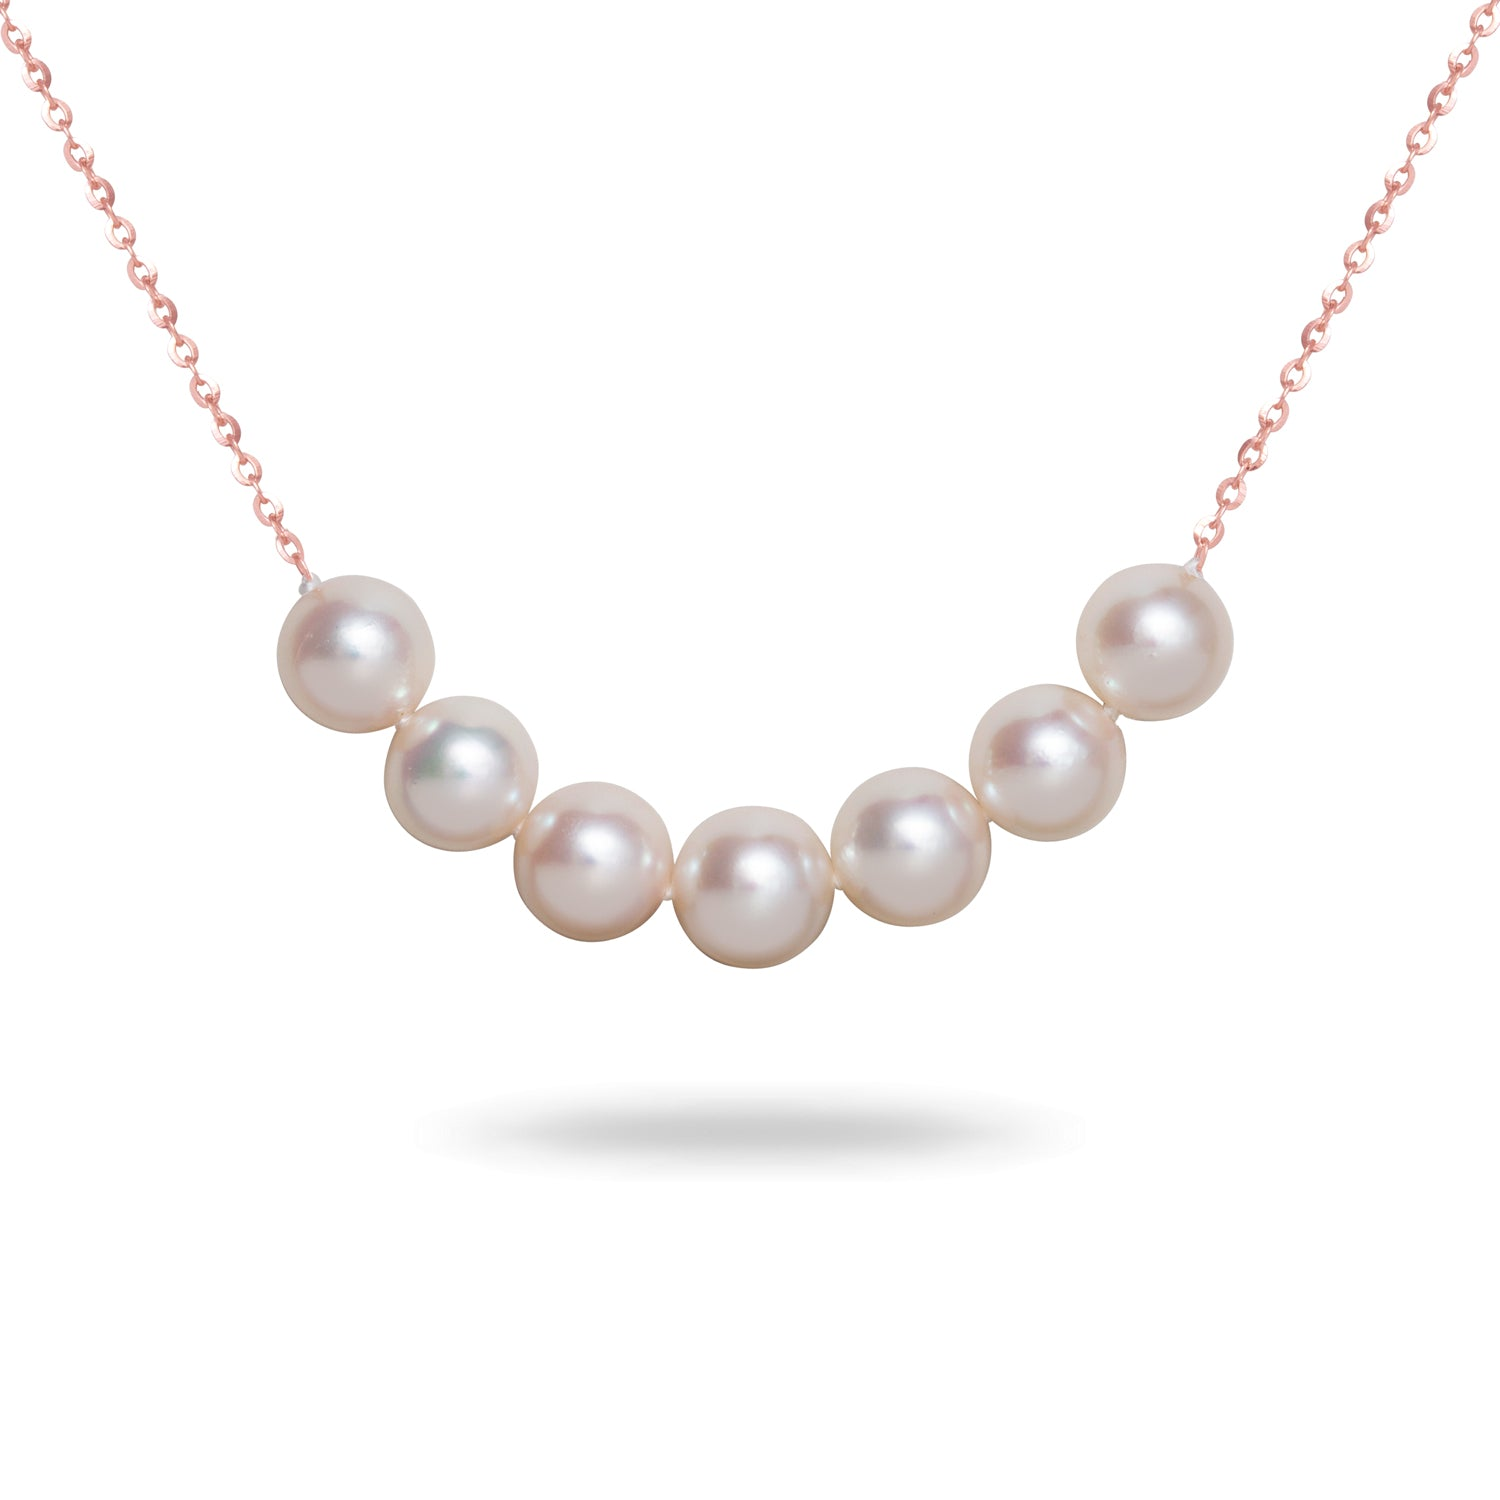 7-7.5mm White Akoya Cultured Pearl Necklace